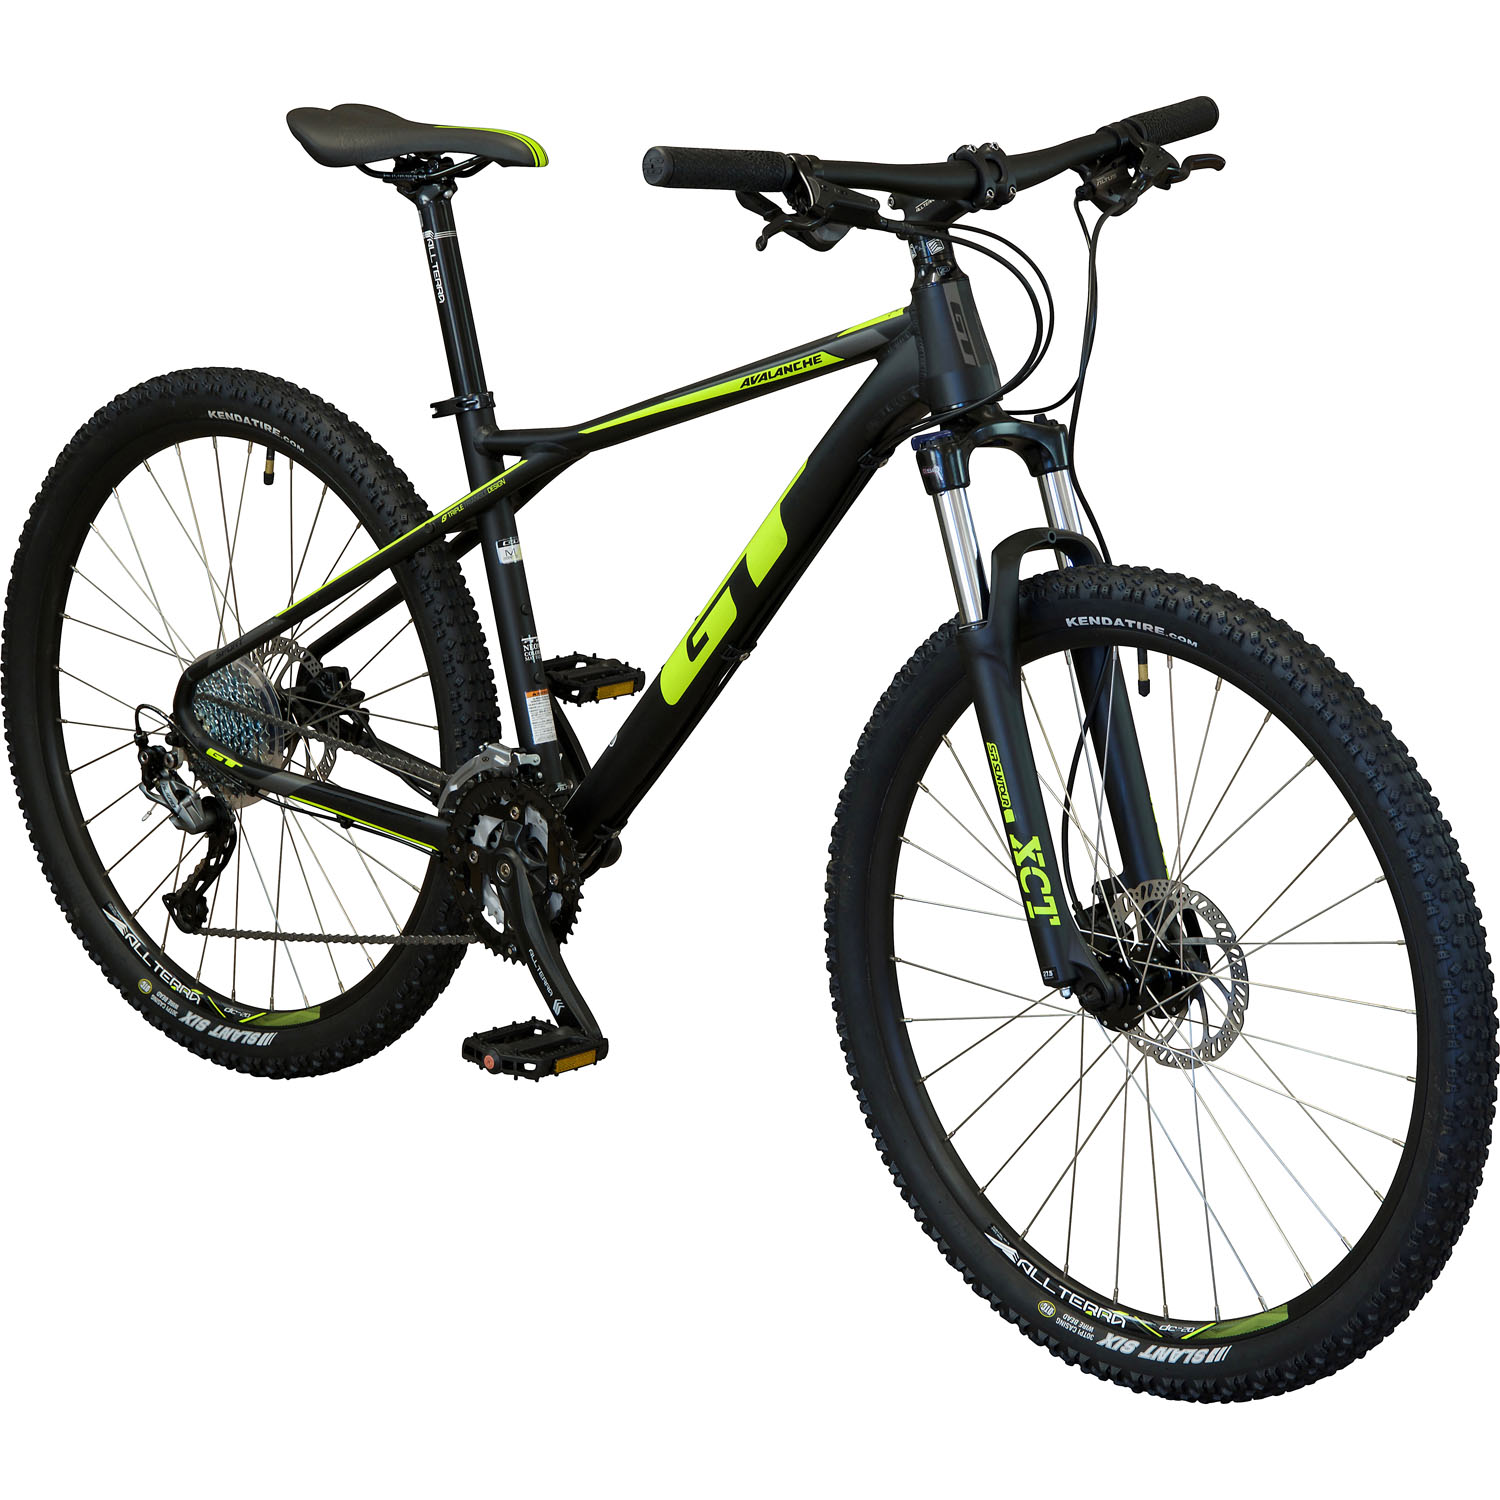 gt avalanche sport hardtail mountainbike 27 5 zoll xs 35. Black Bedroom Furniture Sets. Home Design Ideas